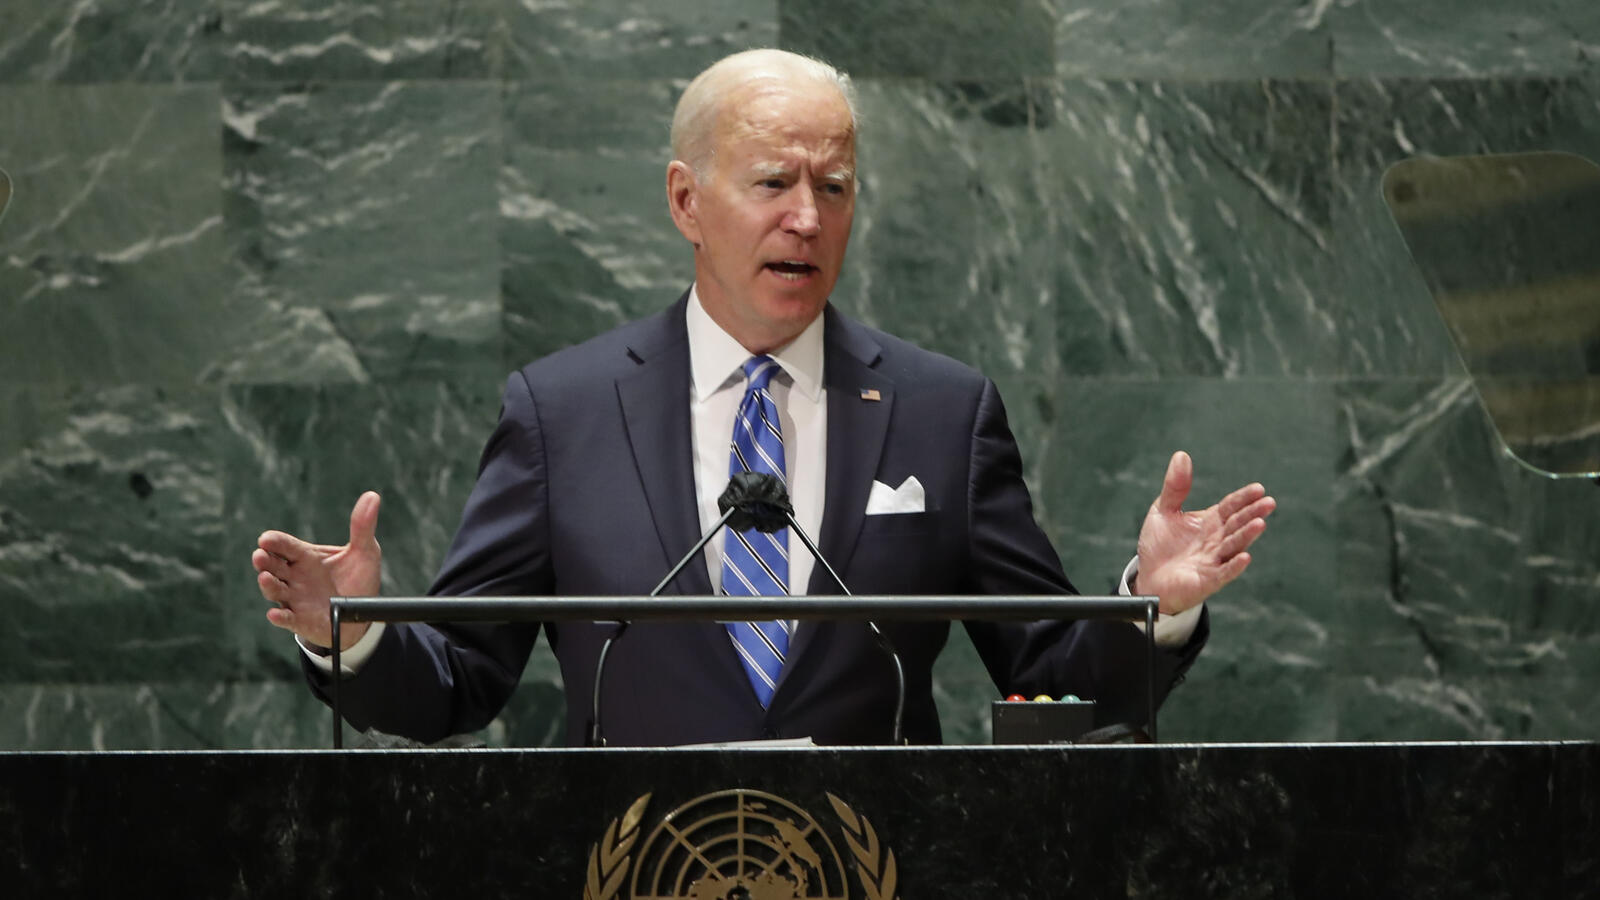 President Biden Delivers His First Speech To UN General Assembly